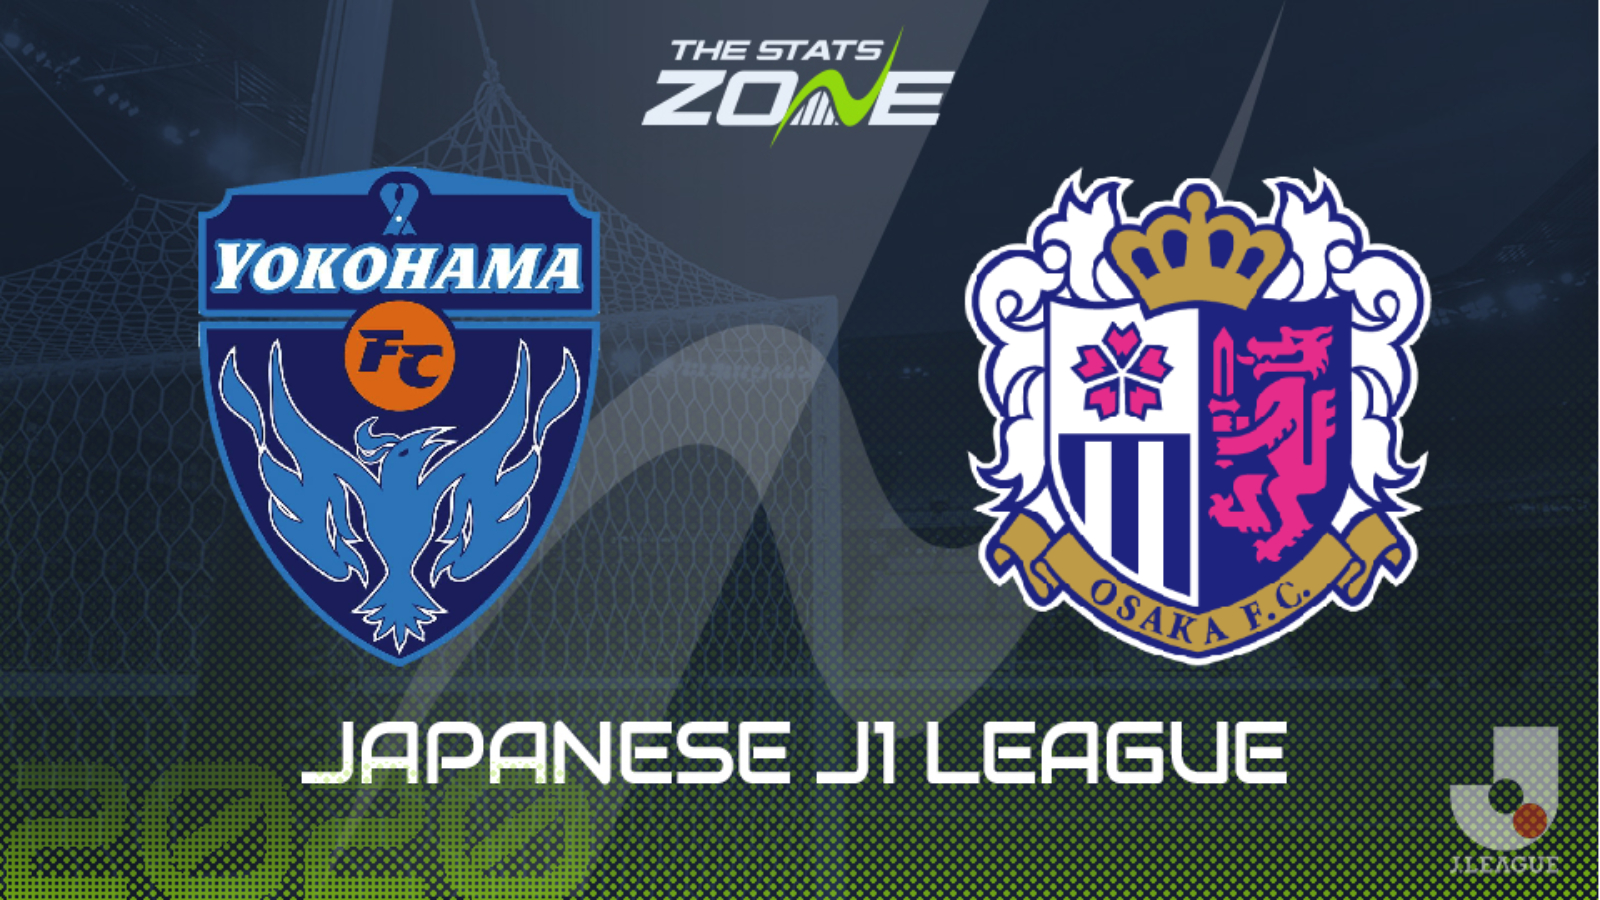 2020 Japanese J1 League Yokohama Vs Cerezo Osaka Preview Prediction The Stats Zone